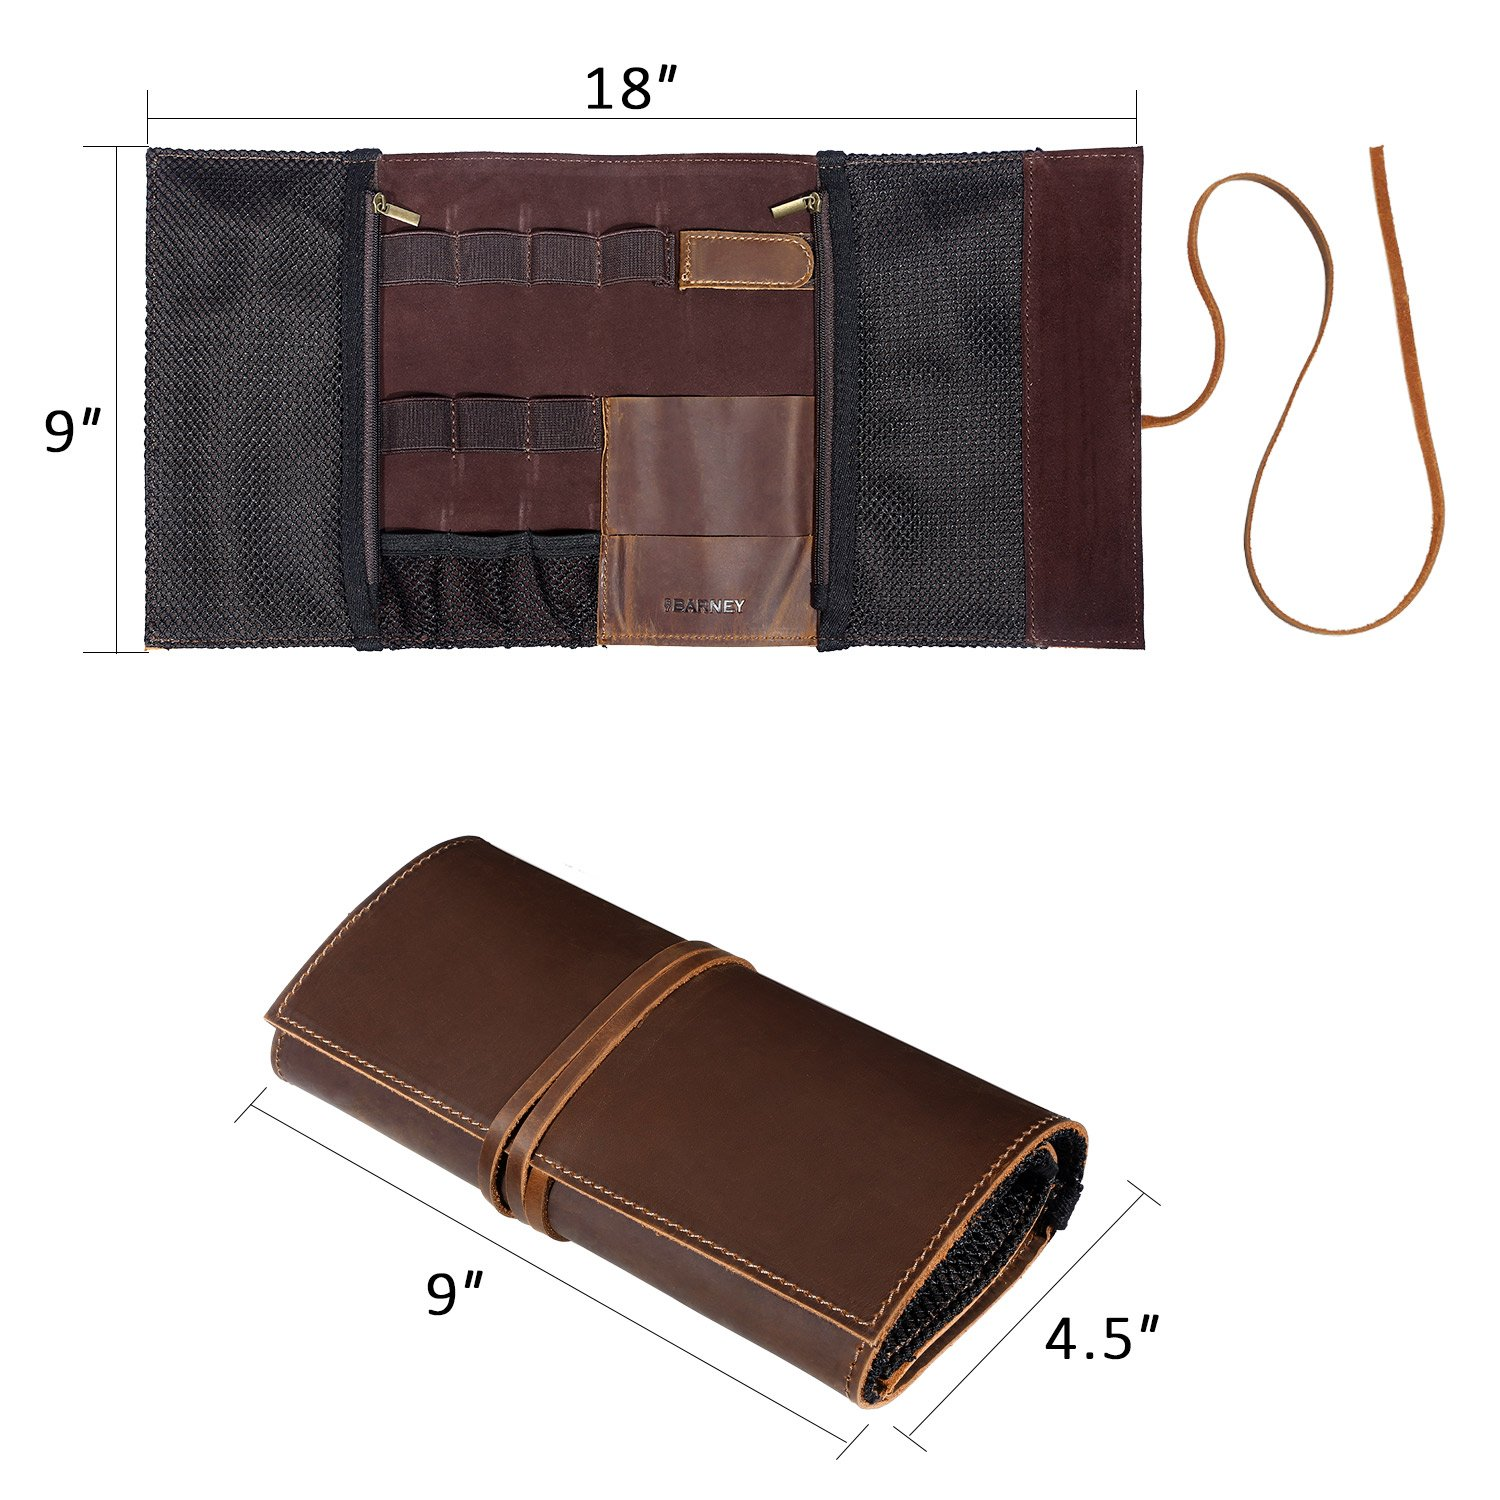 Genuine Crazy Horse Leather Electronics Organizer Roll Bag Travel Pouch for USB Cable, SD Card, Charger, Earphone, Passport, Cash, Coins, Hard Drive by BY BARNEY by BY BARNEY (Image #4)